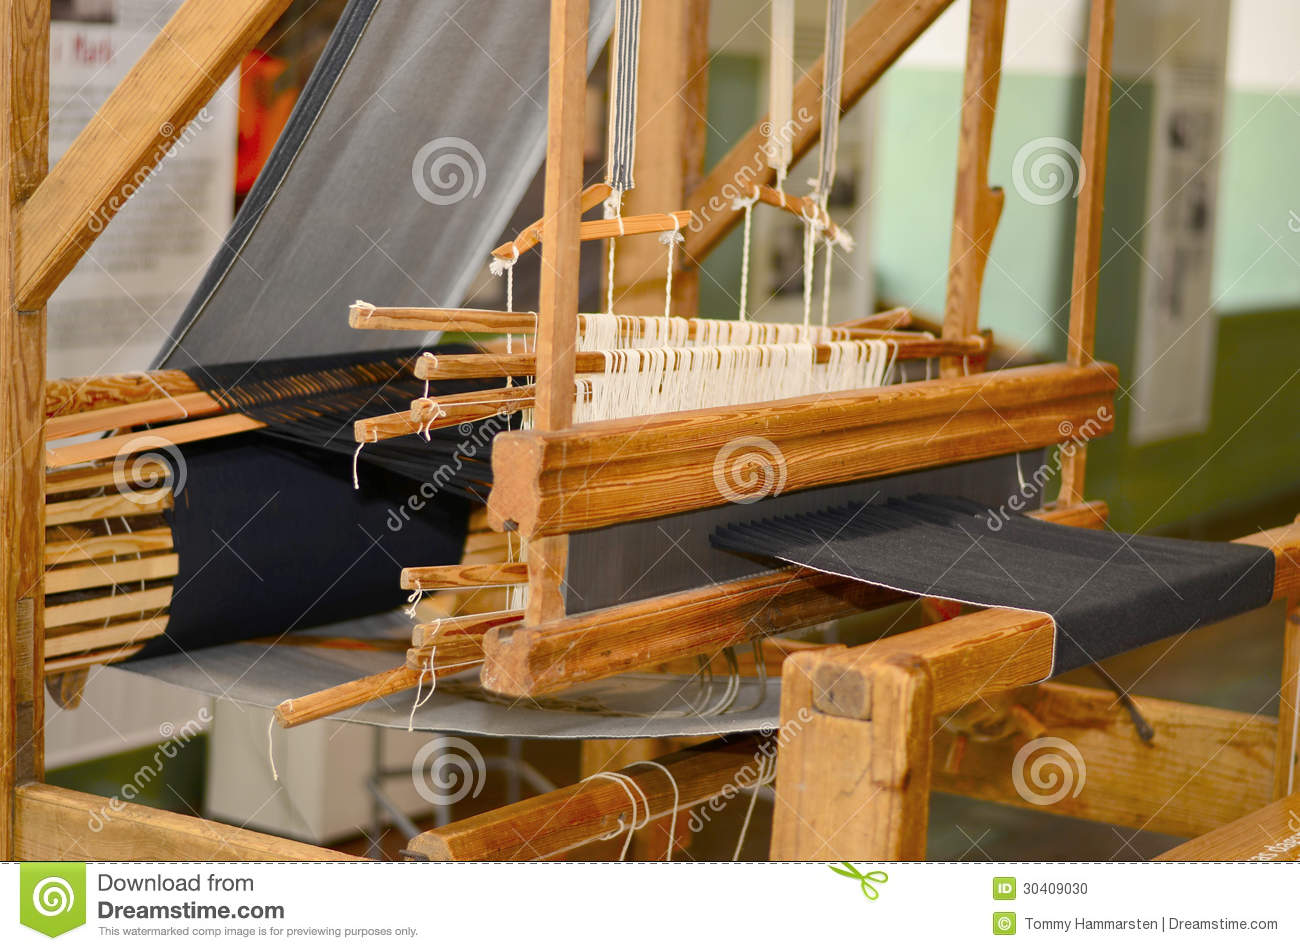 Old Spinning machines in wood